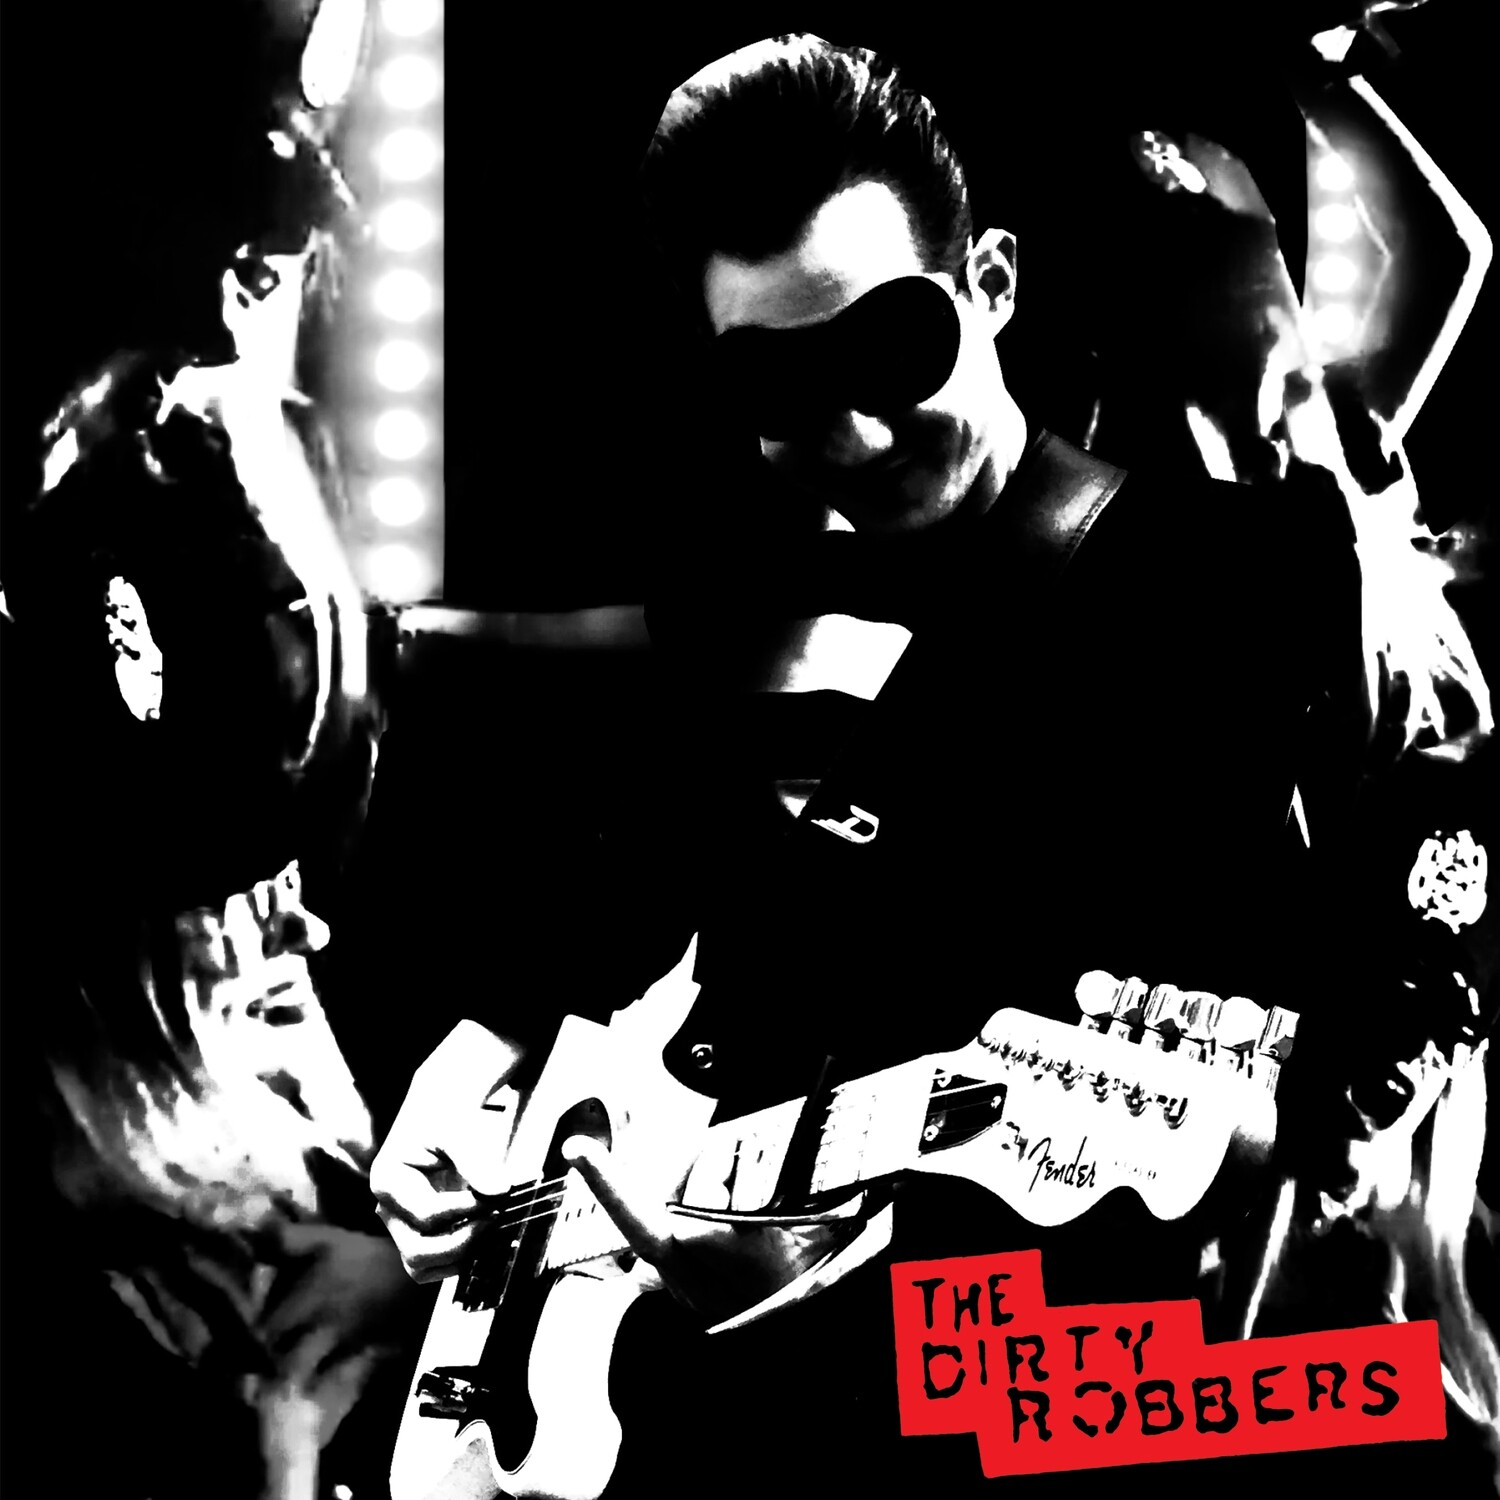 The Dirty Robbers-Do You Love Me 7-inch vinyl